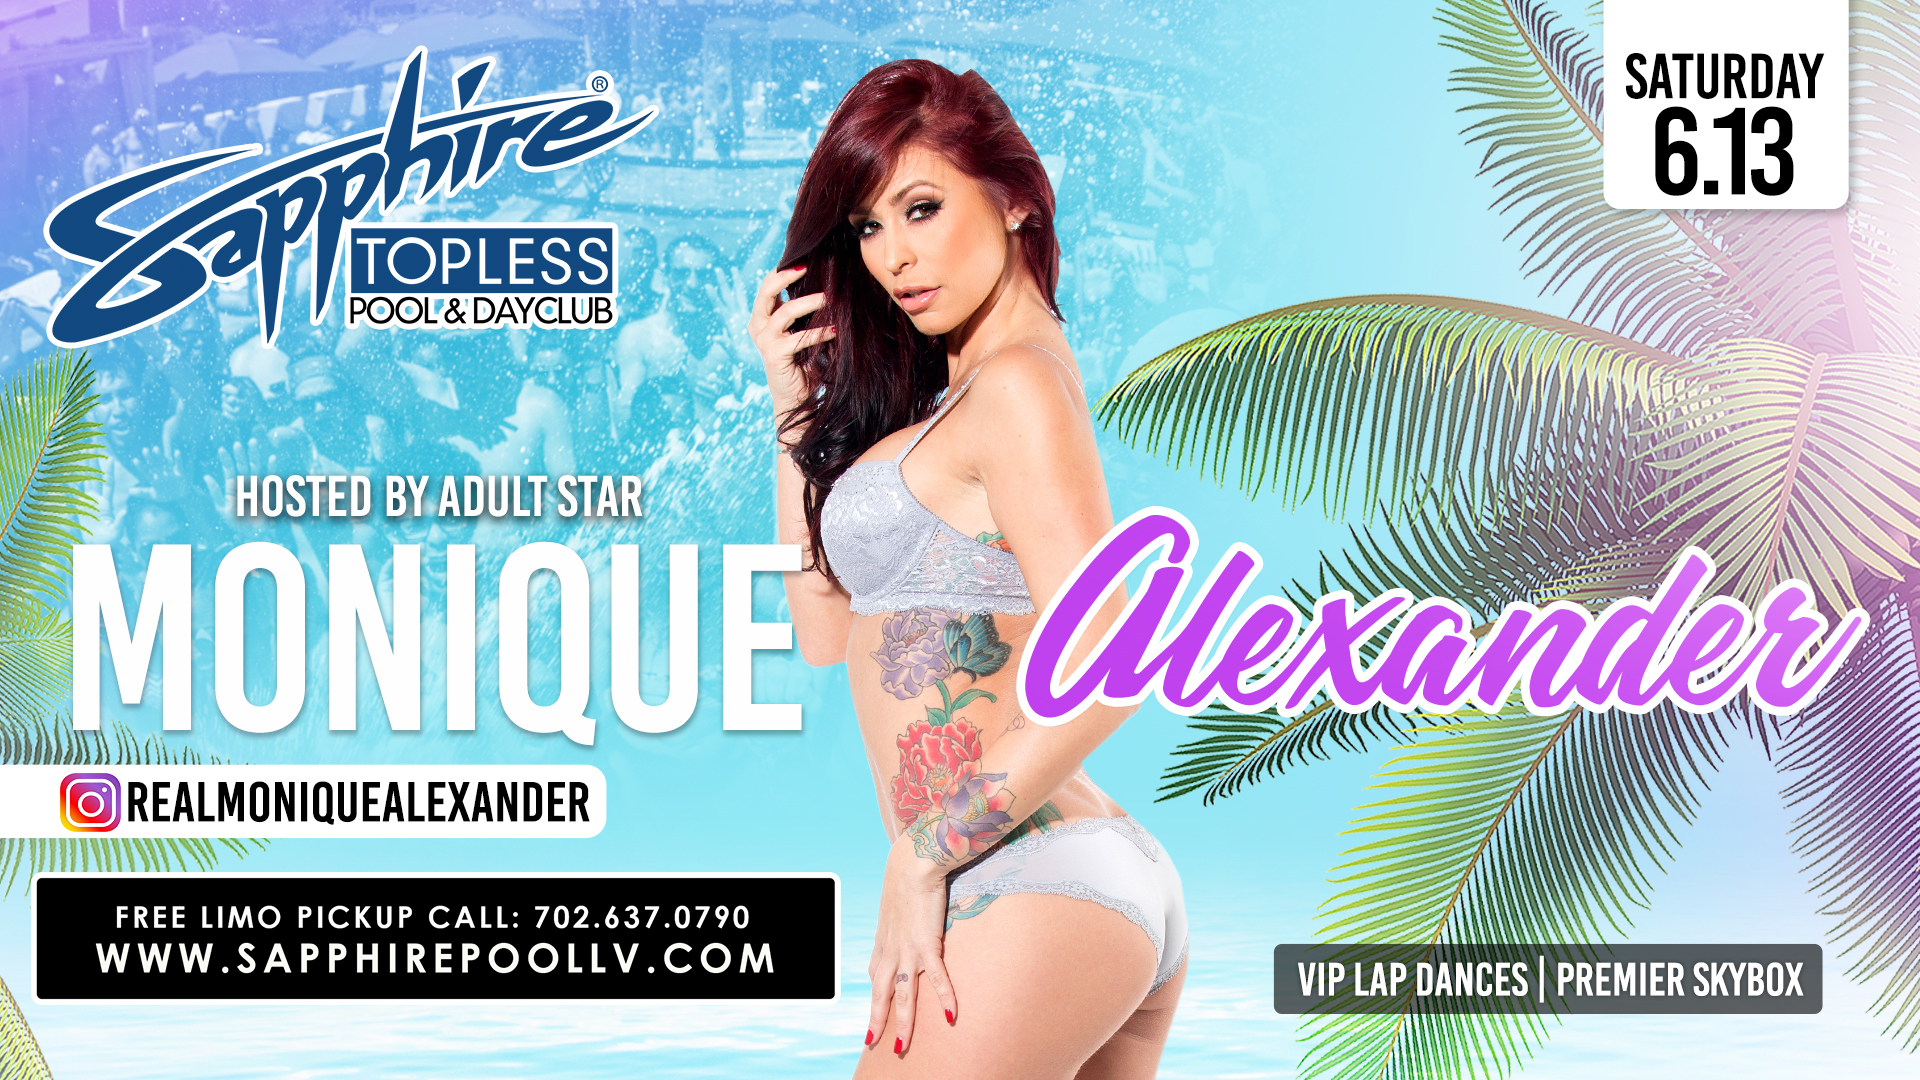 Adult Star Monique Alexander Hosts Sapphire Topless Pool and Dayclub Saturday, June 13th